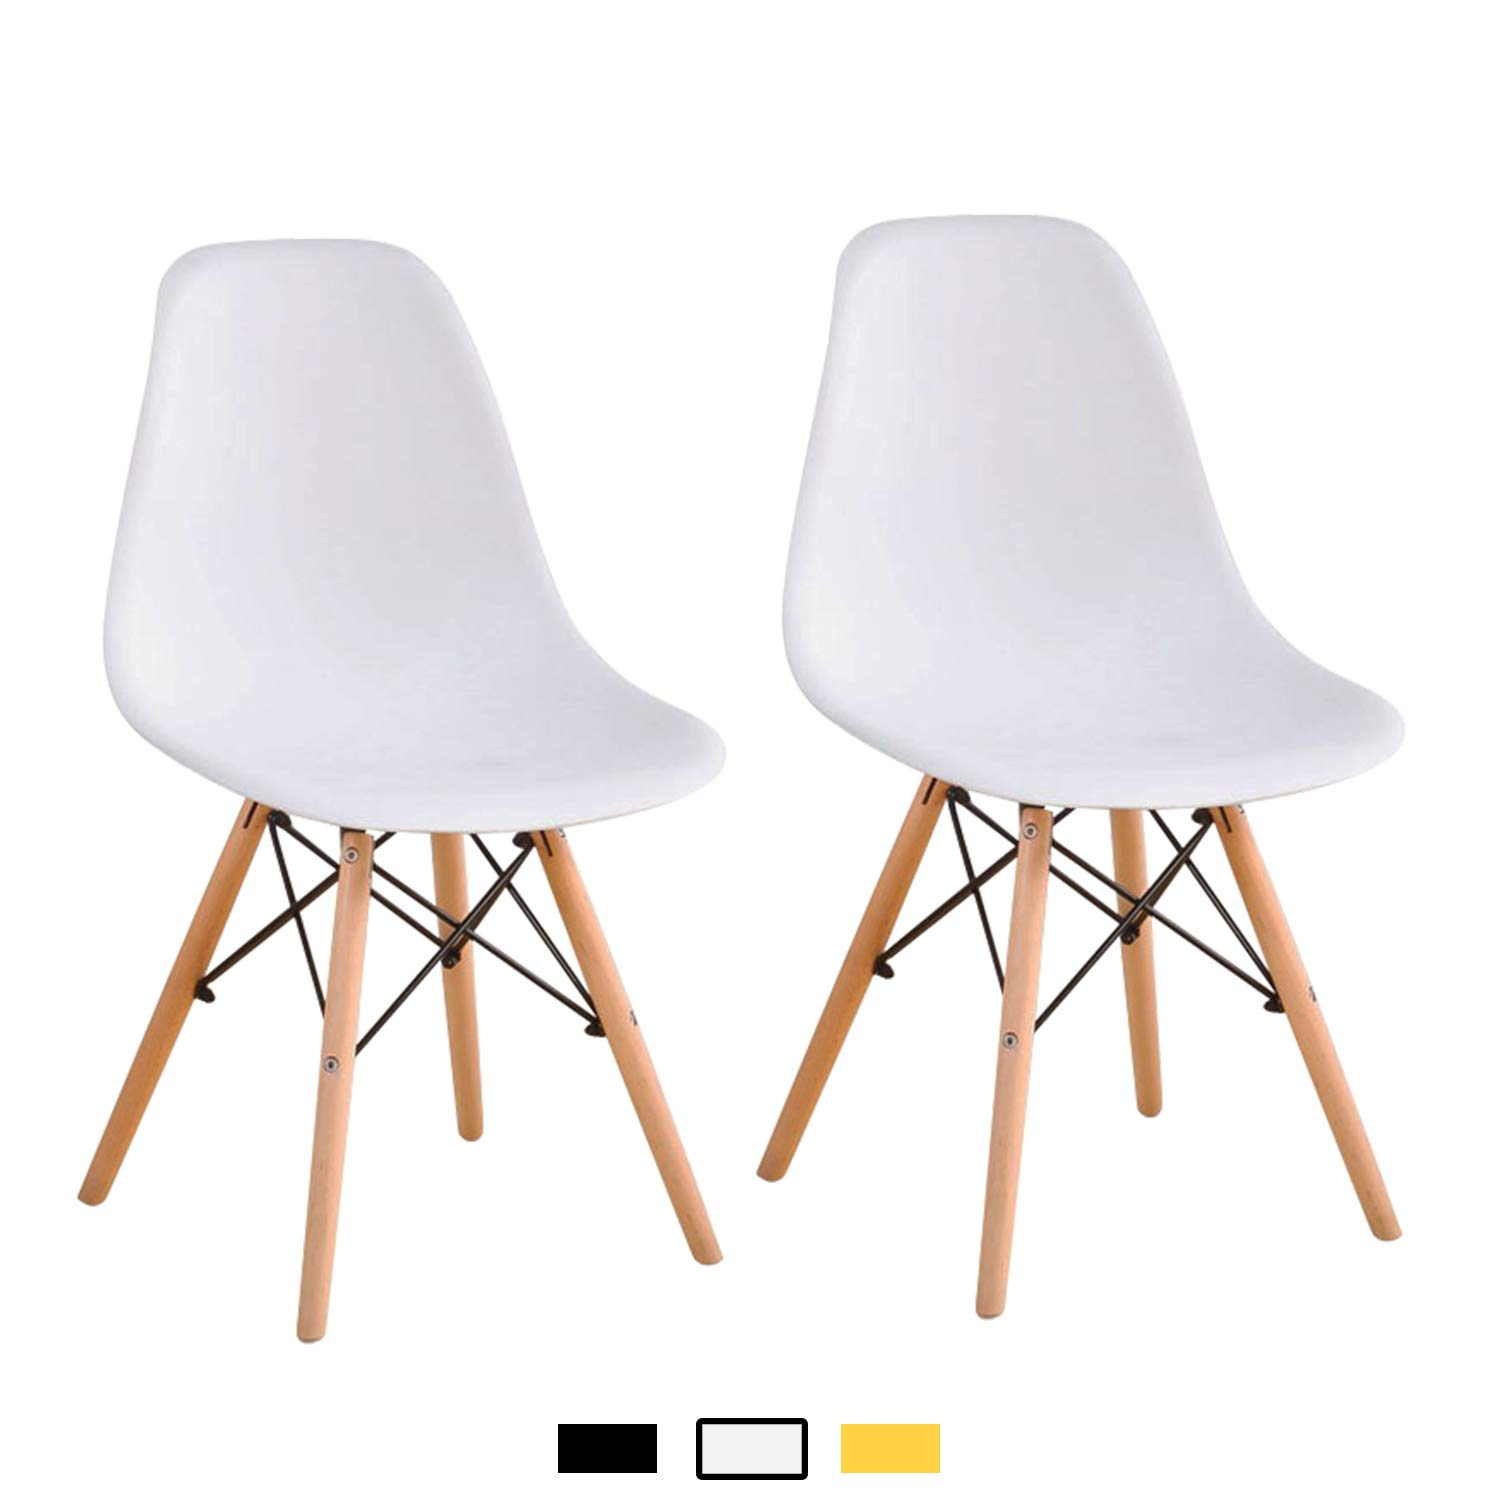 YEEFY Modern Style Dining Chairs Mid Century Dining Room Chairs with Natural Wood Set of 2, (White)